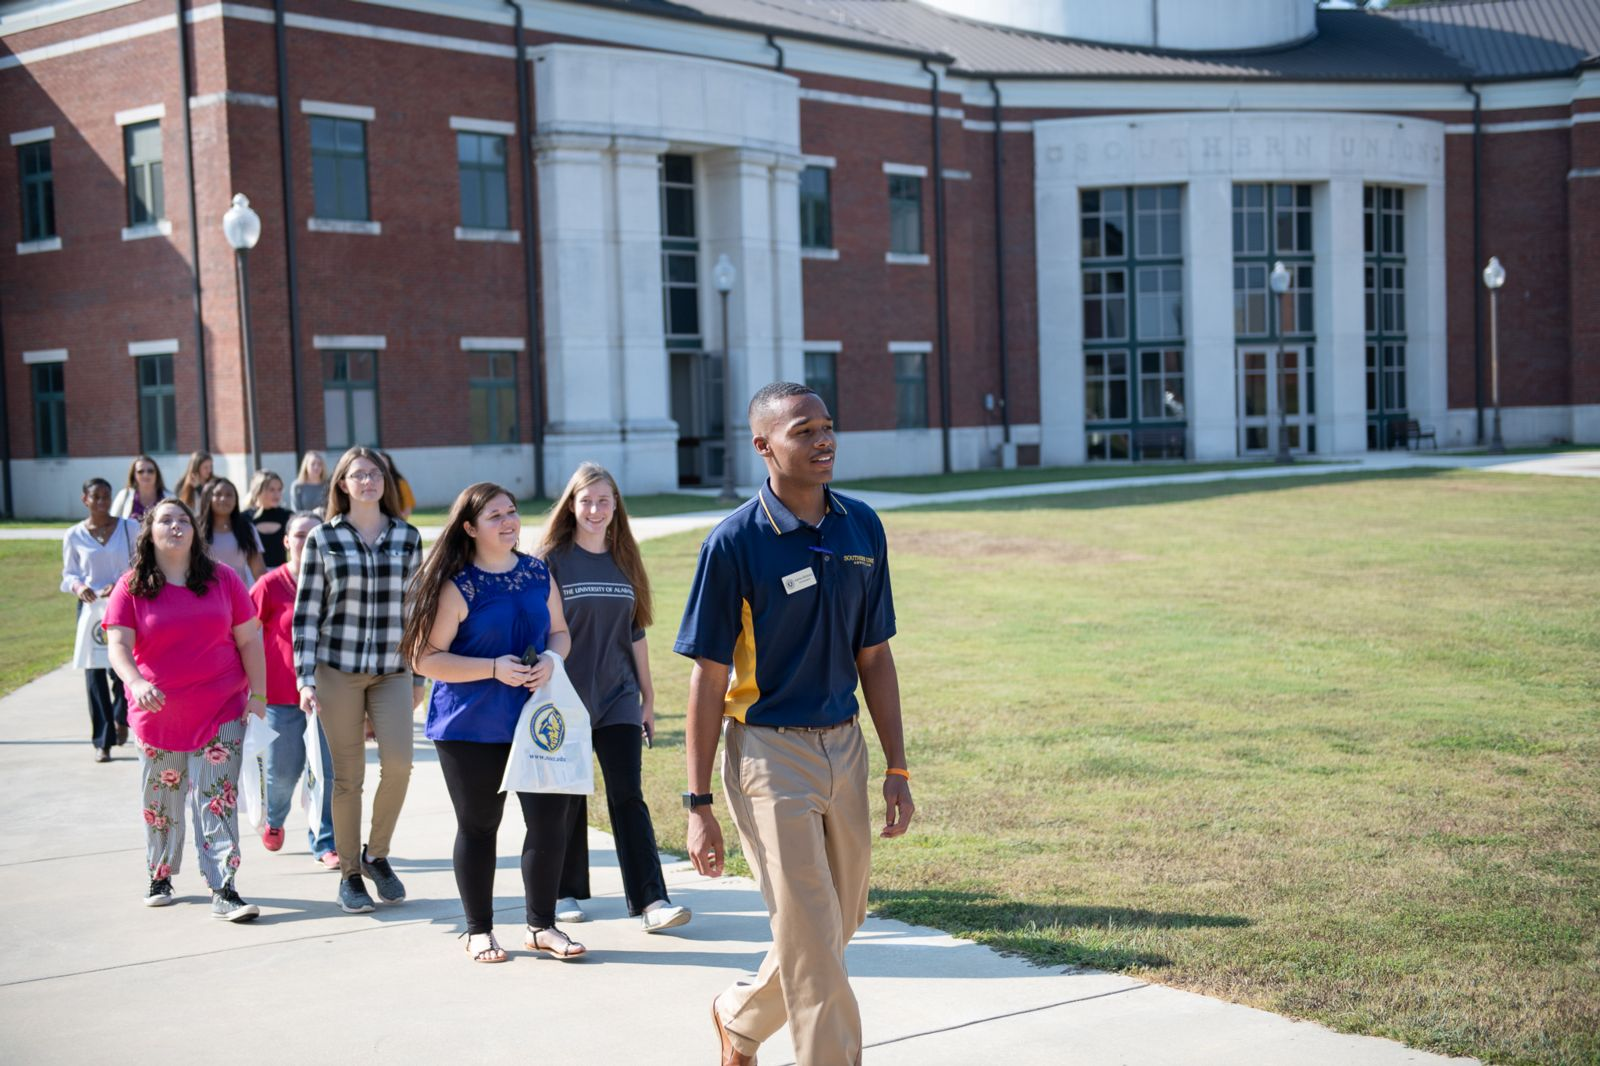 southern union opelika campus map Campus Tours Recruitment Staff Southern Union State Community southern union opelika campus map